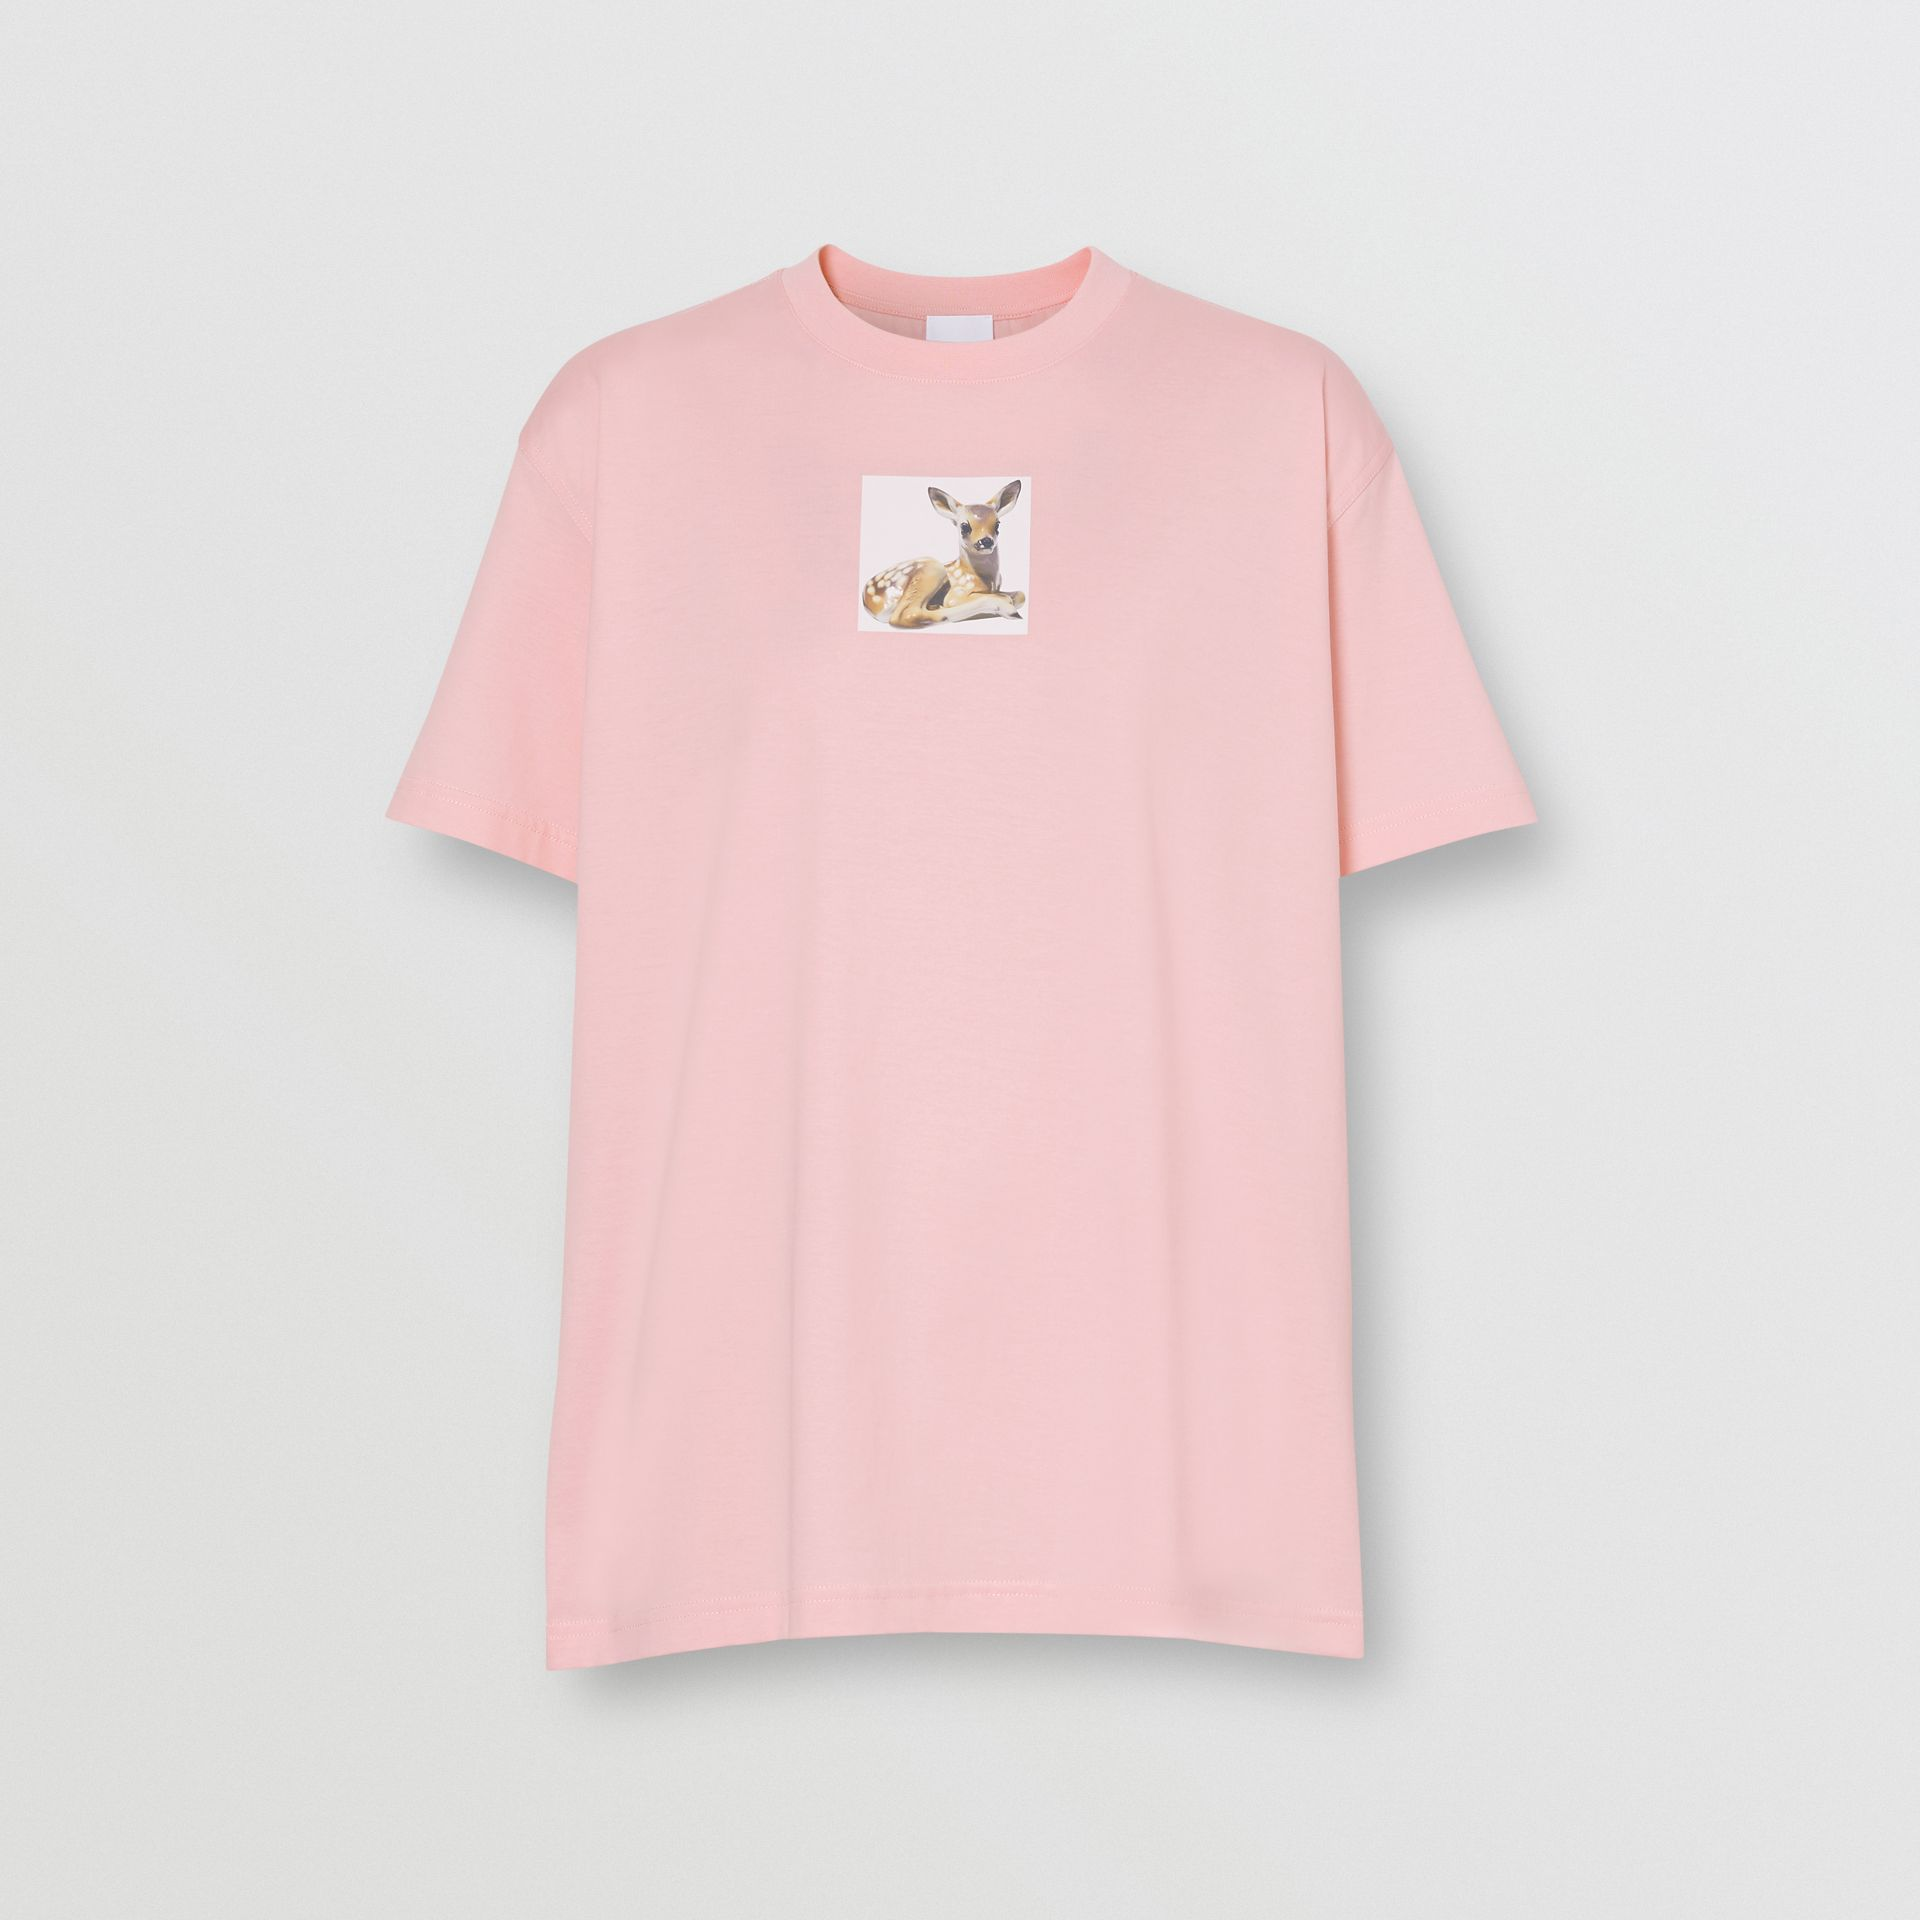 Deer Print Cotton T-shirt in Candy Pink - Women | Burberry United Kingdom - gallery image 3